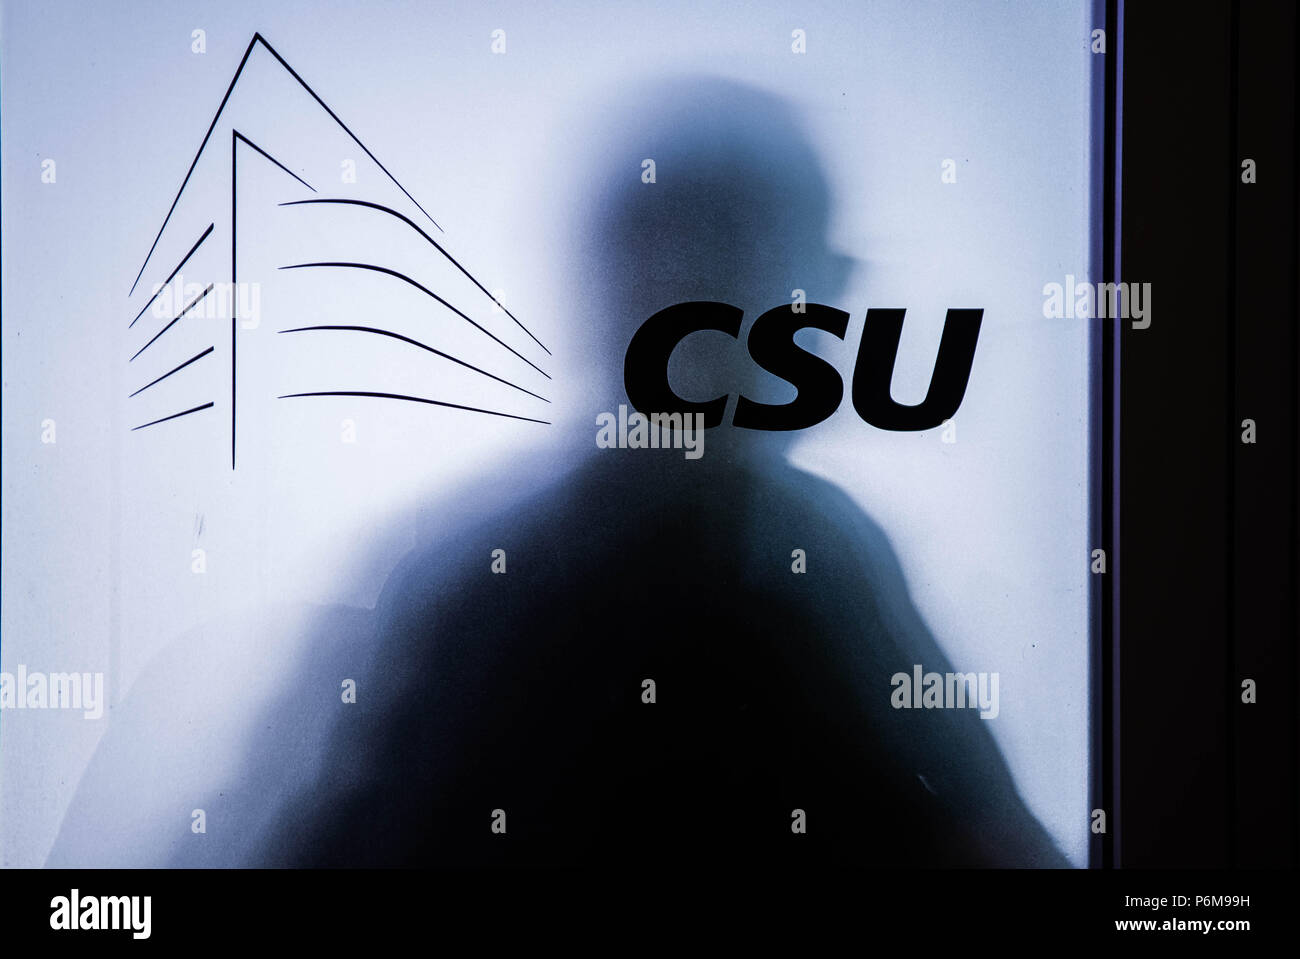 Munich, Bavaria, Germany. 1st July, 2018. Someone stands behind the frosted door of a CSU conference room where meetings are taking place to determine the future of Germany's government. Officials of the Bavarian CSU party hold a meeting to determine if the CSU will split from its union with Angela Merkel's CDU, effectively dissolving Germany's government, or if it will continue. The point of difference is regarding the sending of migrants back to the country of their first registration at the German border. Credit: Sachelle Babbar/ZUMA Wire/Alamy Live News - Stock Image